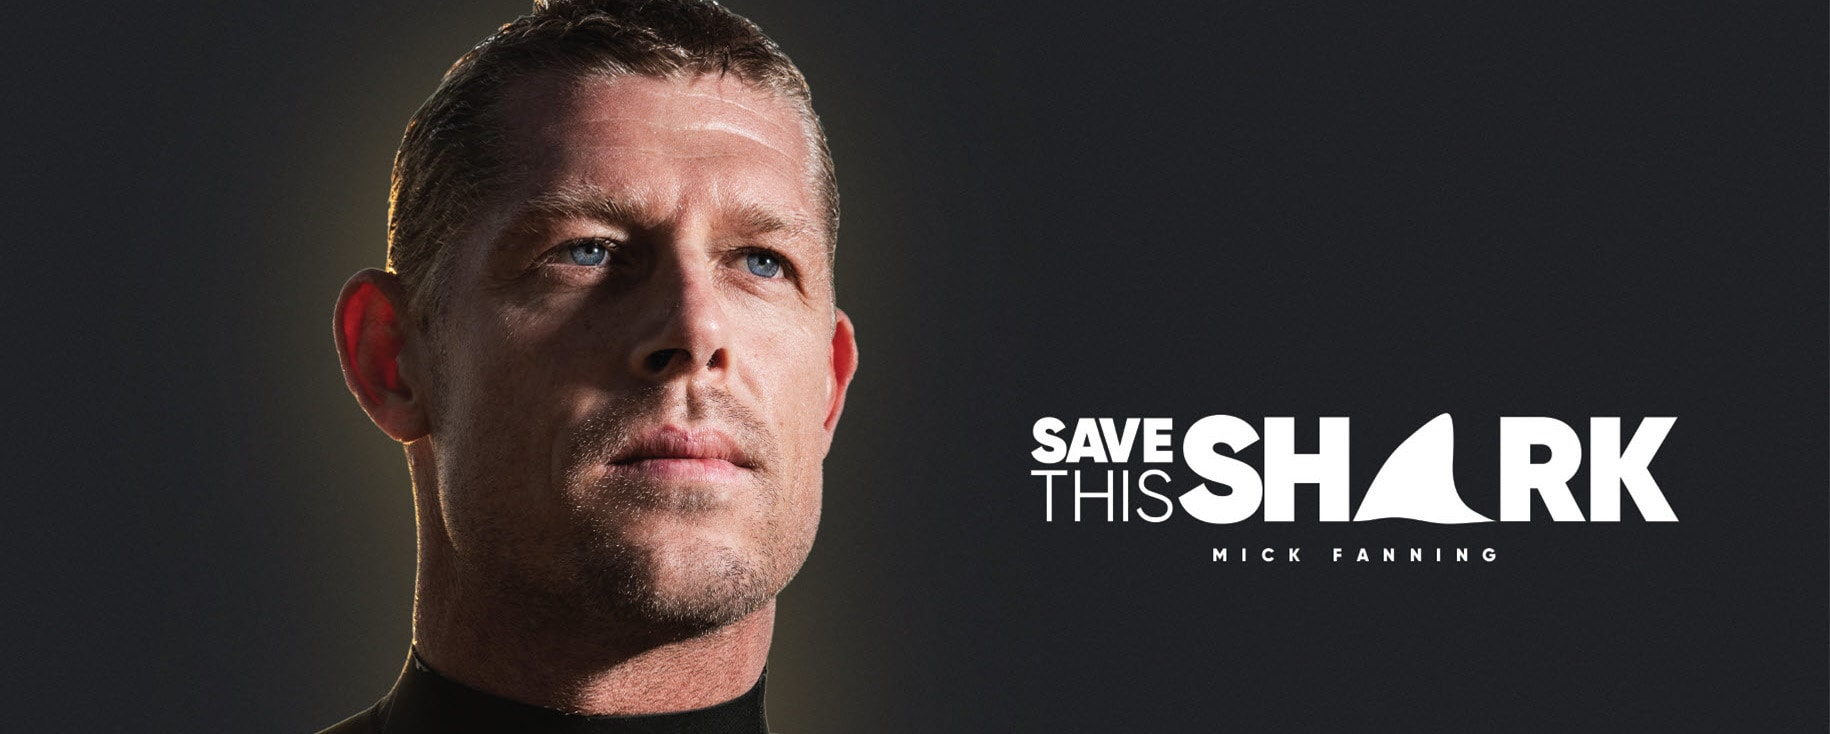 Save This Shark with Mick Fanning coming soon to National Geographic